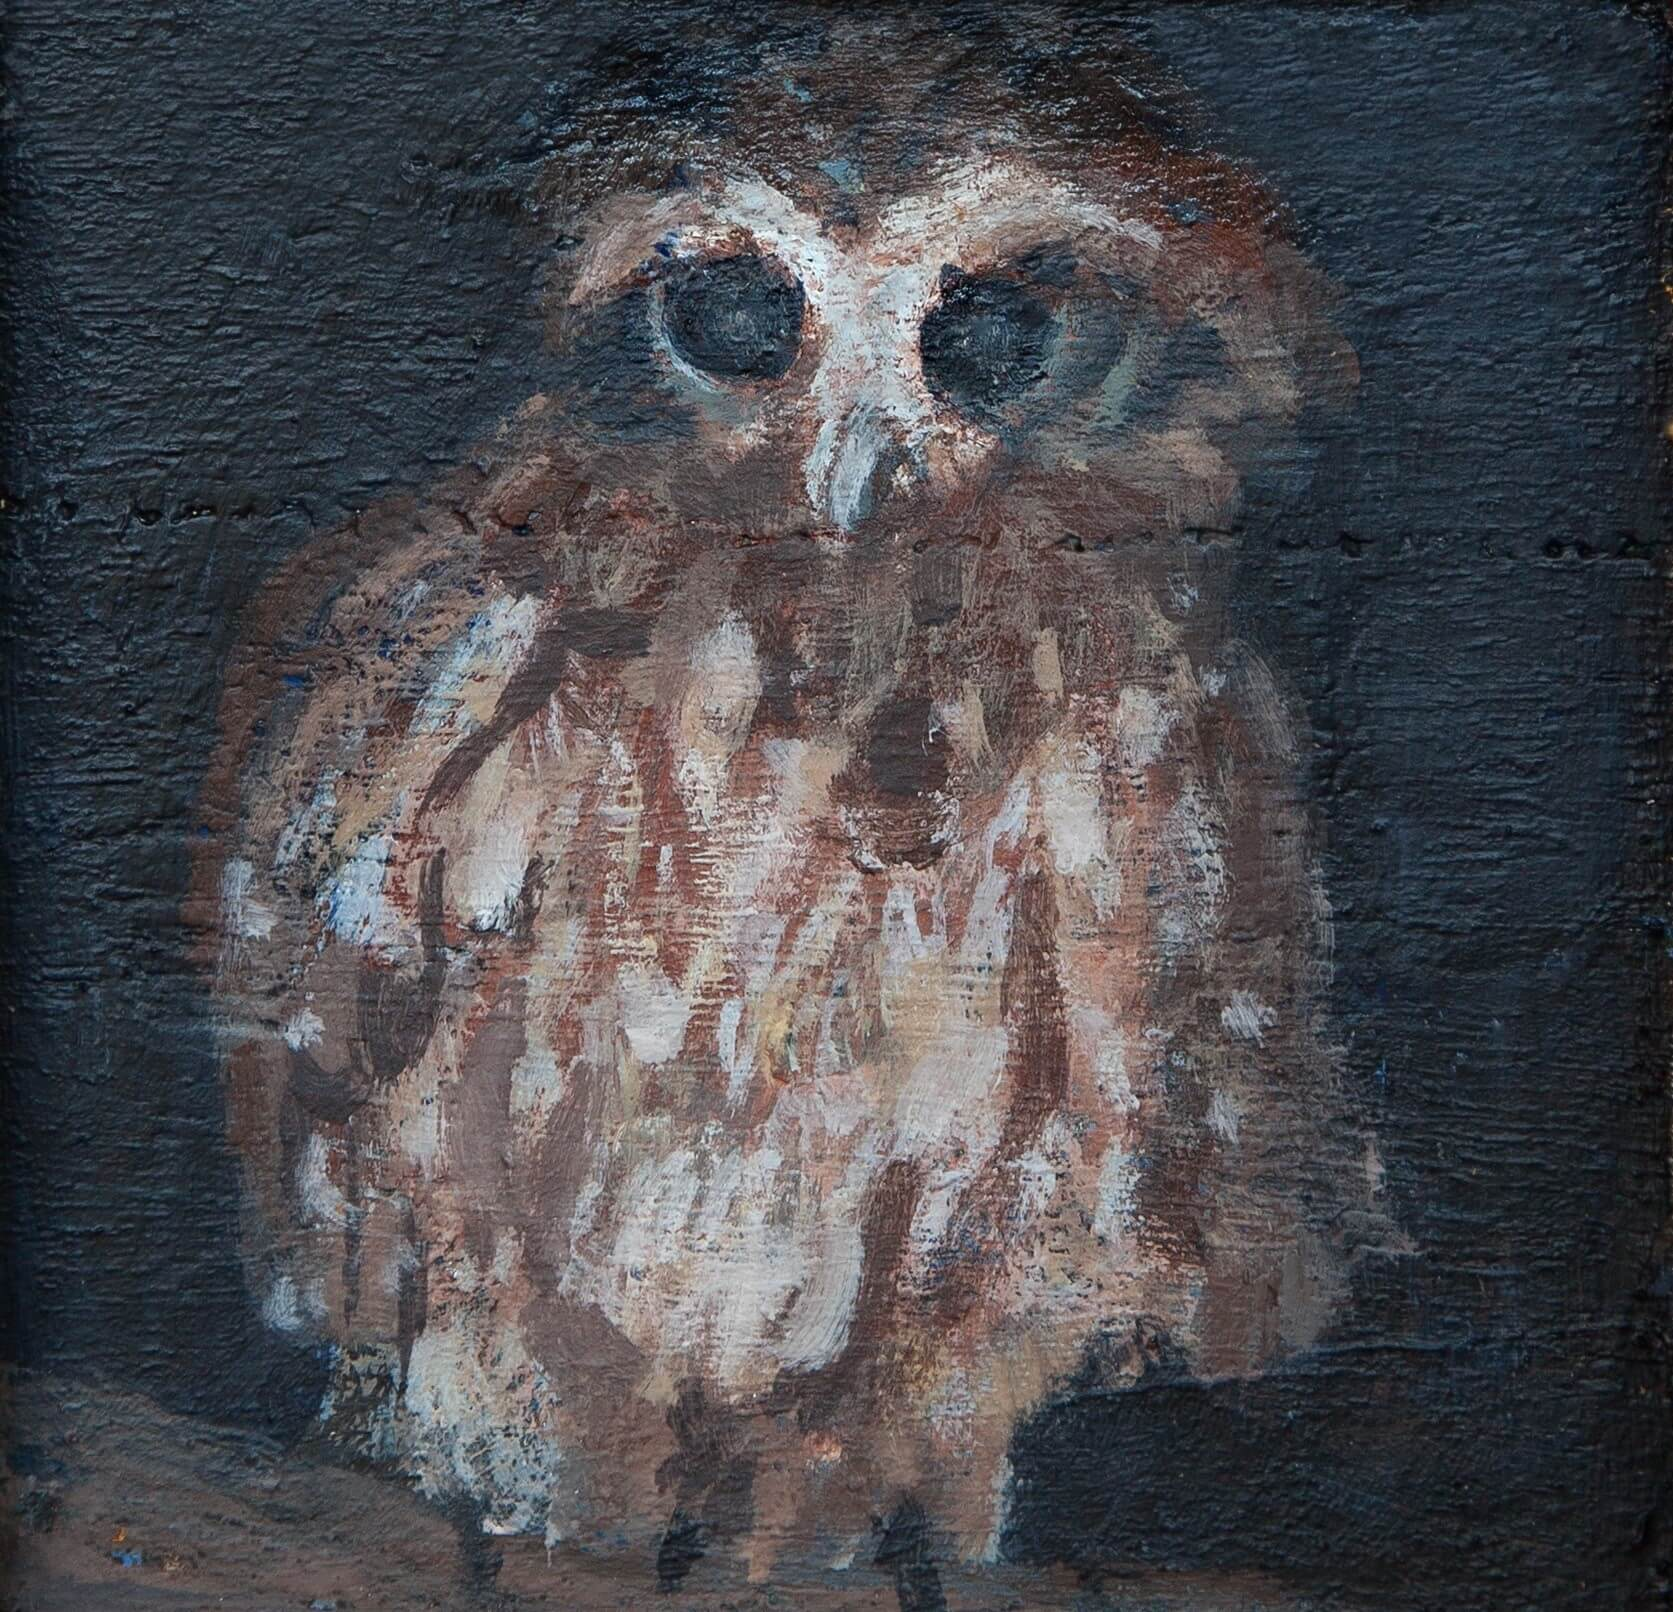 Owl beliefs in nyungar culture anthropology from the shed plate 1 boobok owl 2016 acrylic on jarrah by emily ten raa biocorpaavc Images